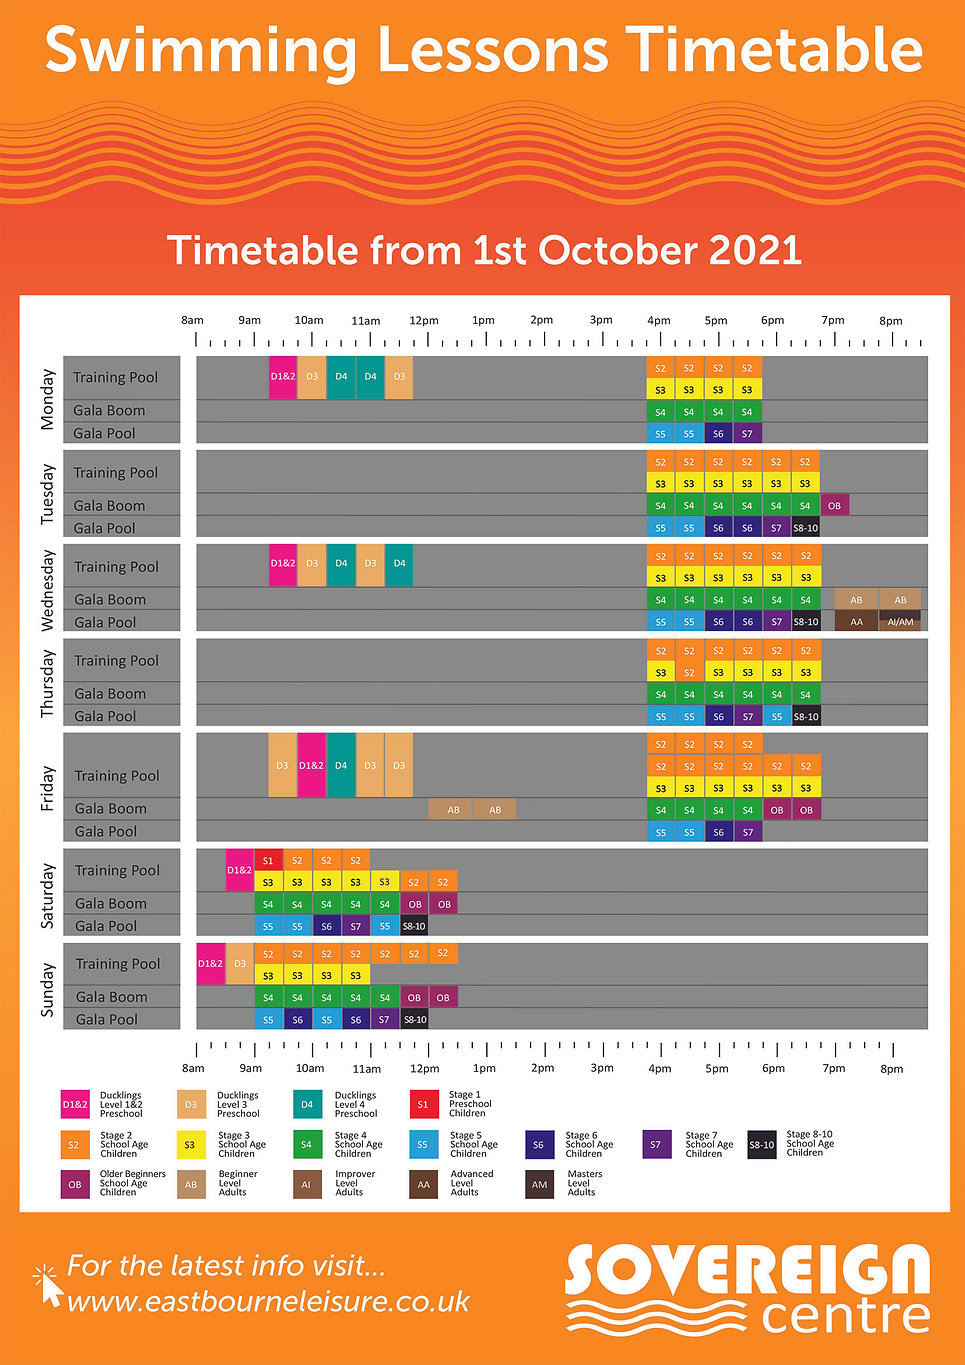 swimming lessons timetable October 21.jpg